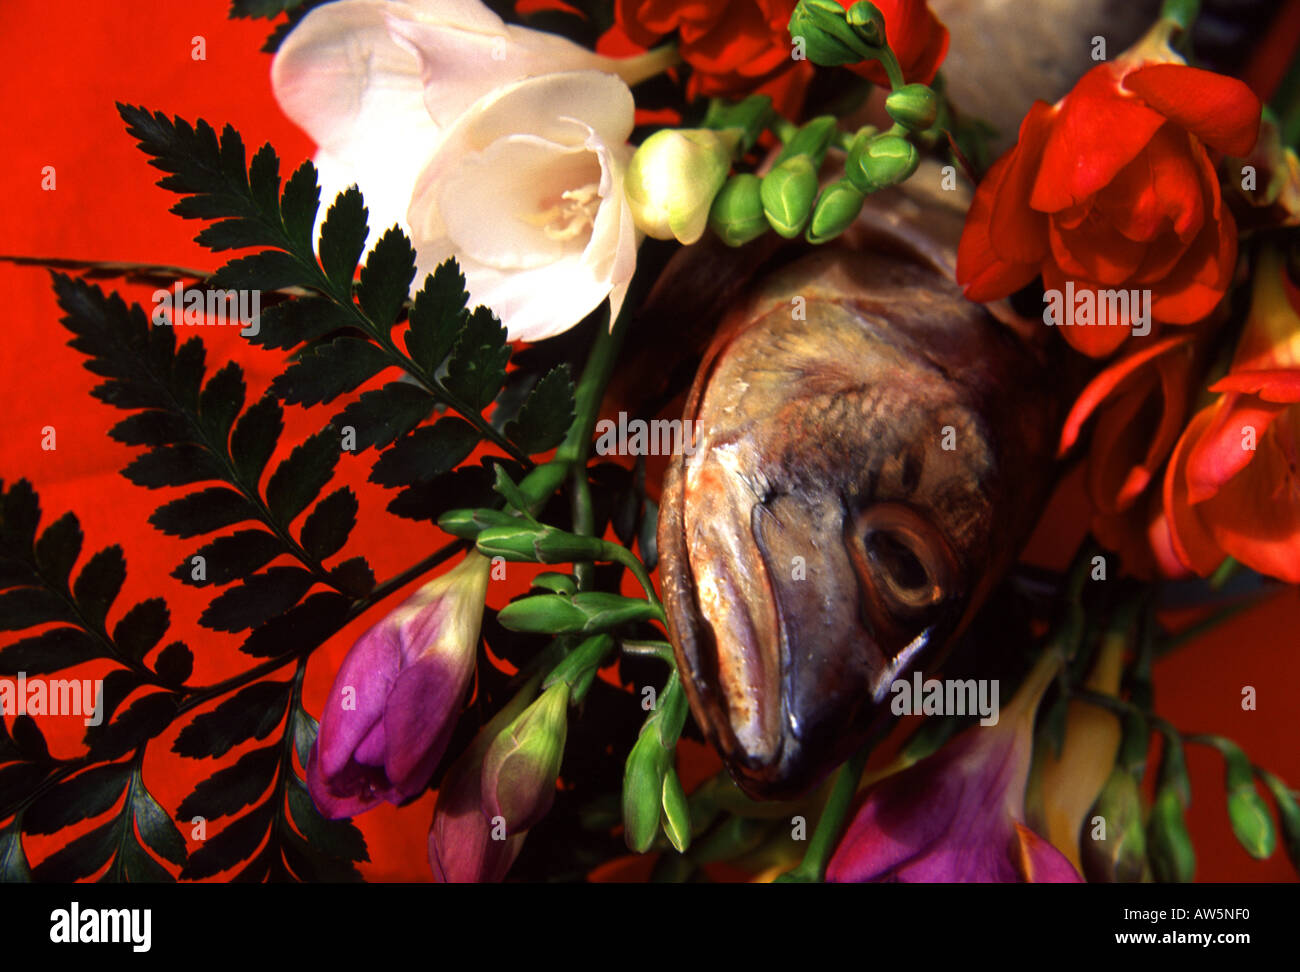 Whole dead fish emerging from bouquet of beautiful flowers against red background - Stock Image